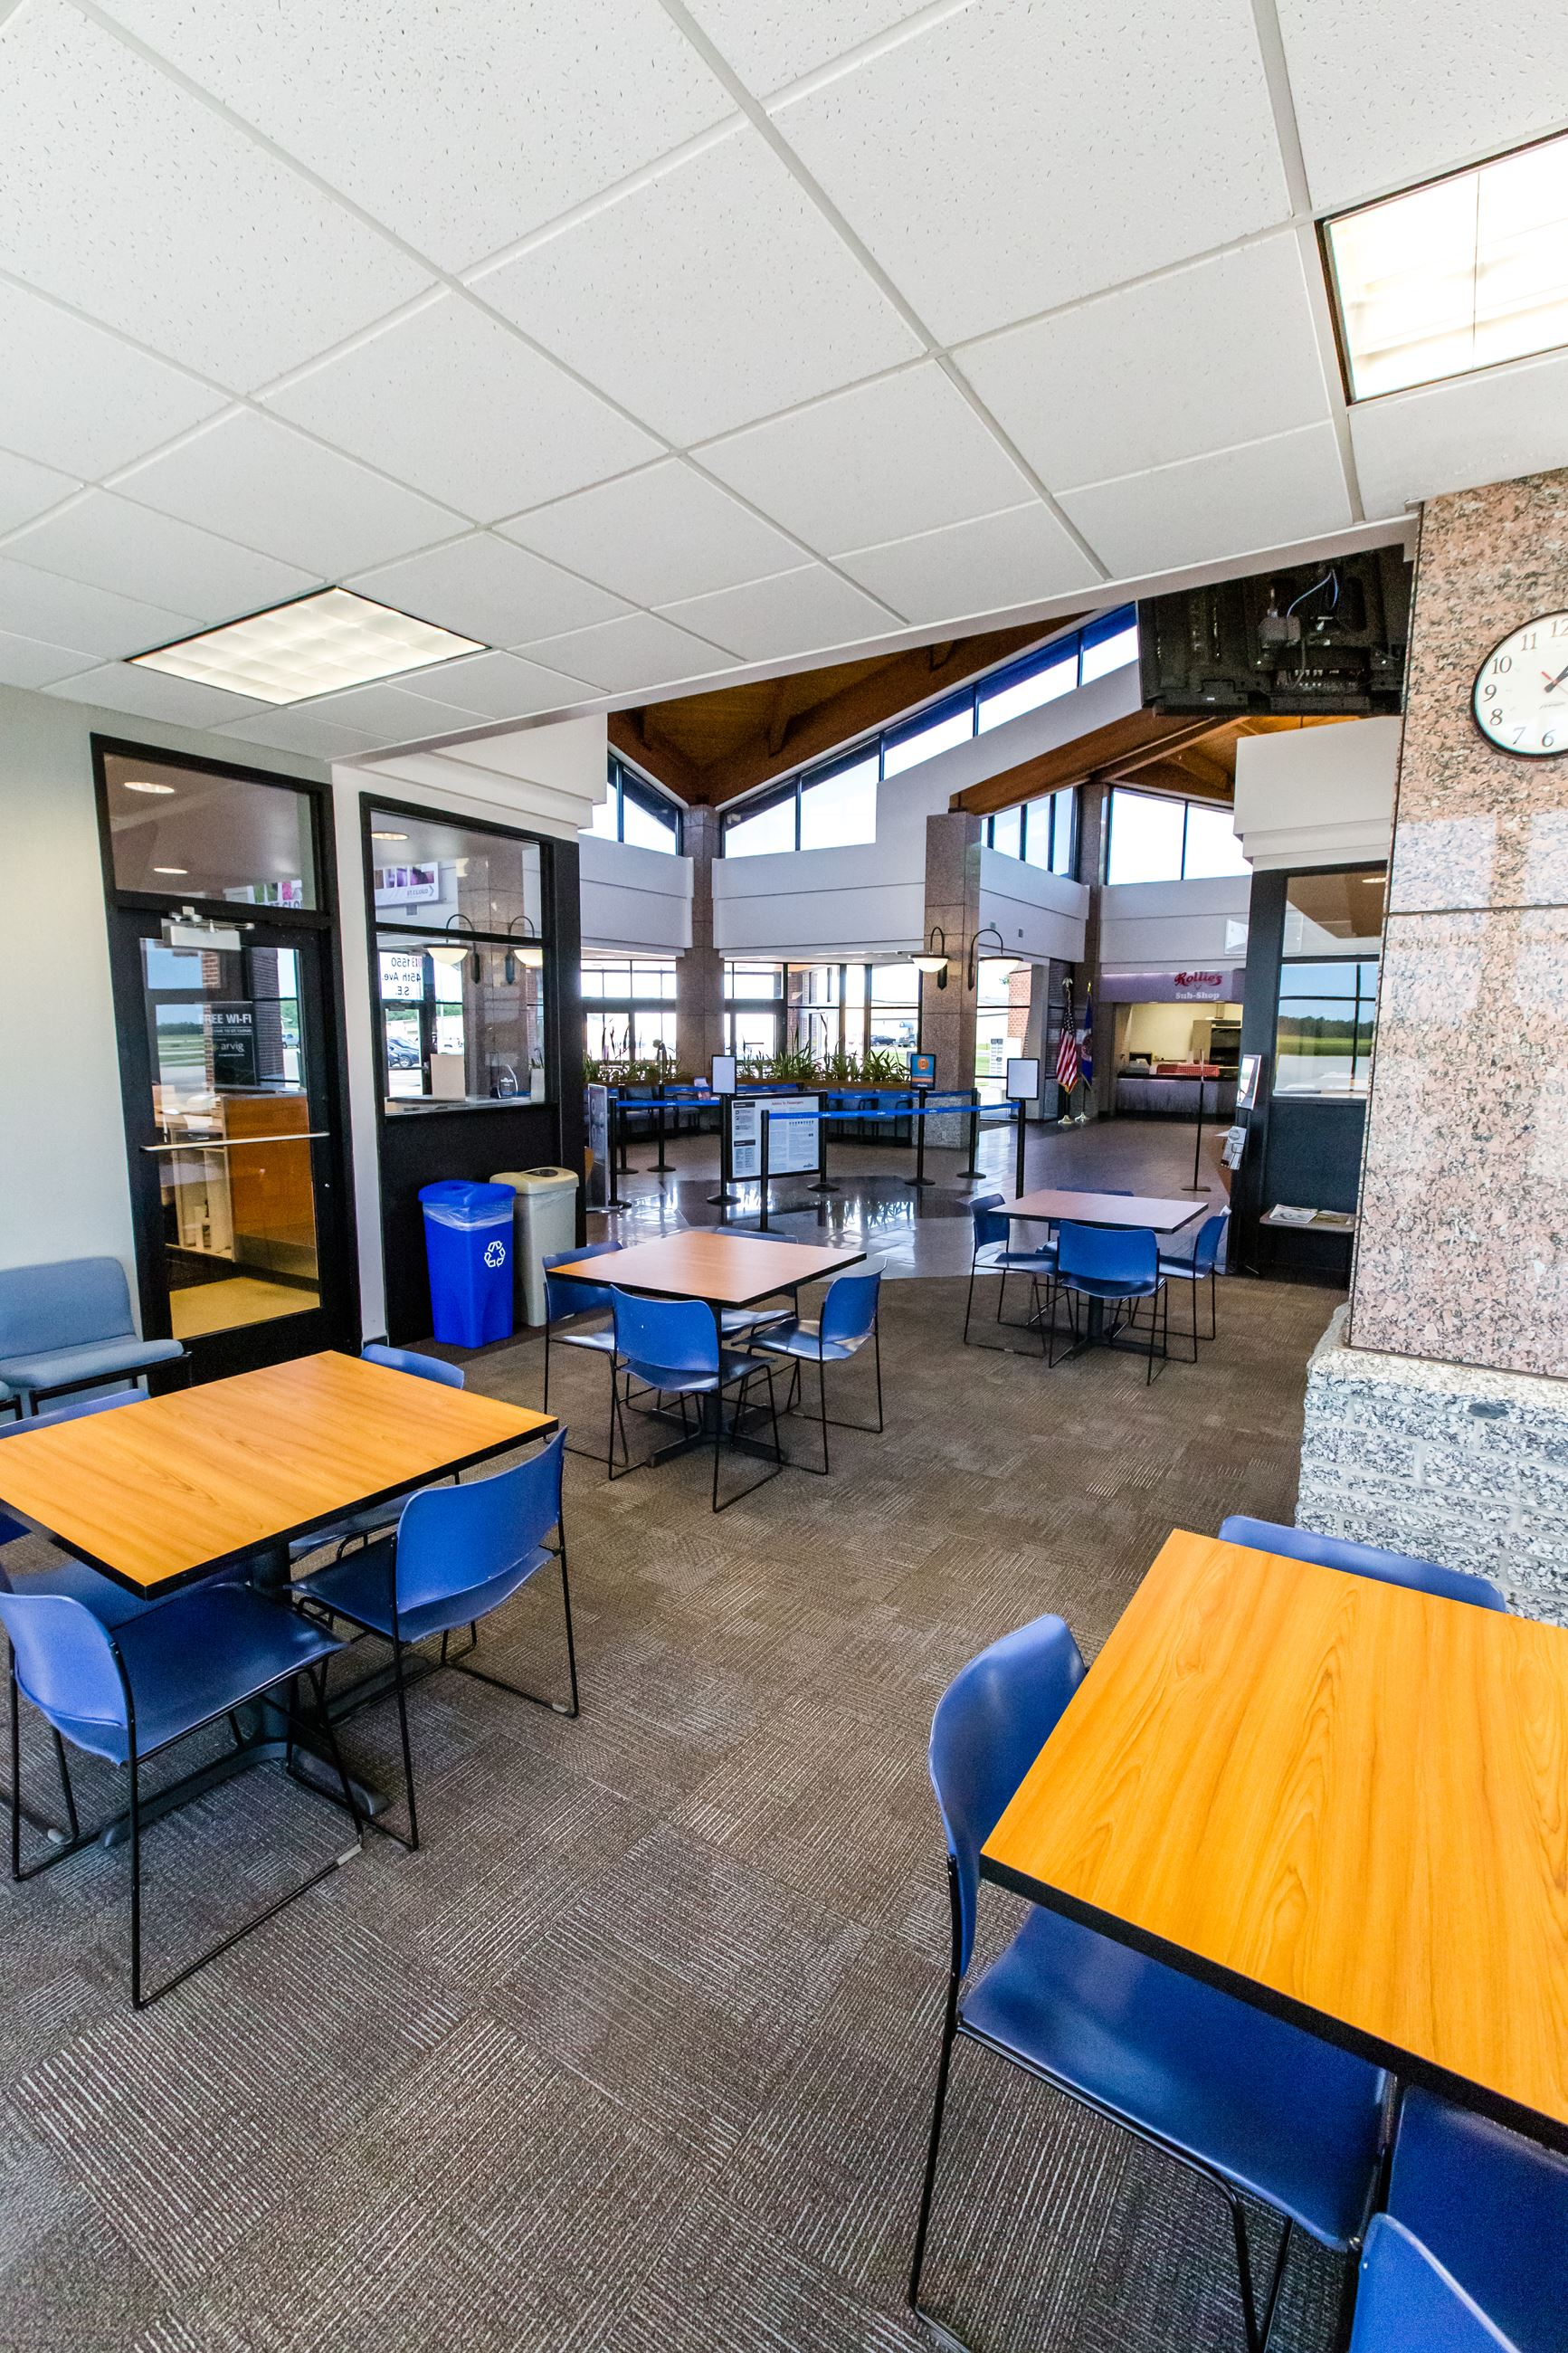 Commons Eating area